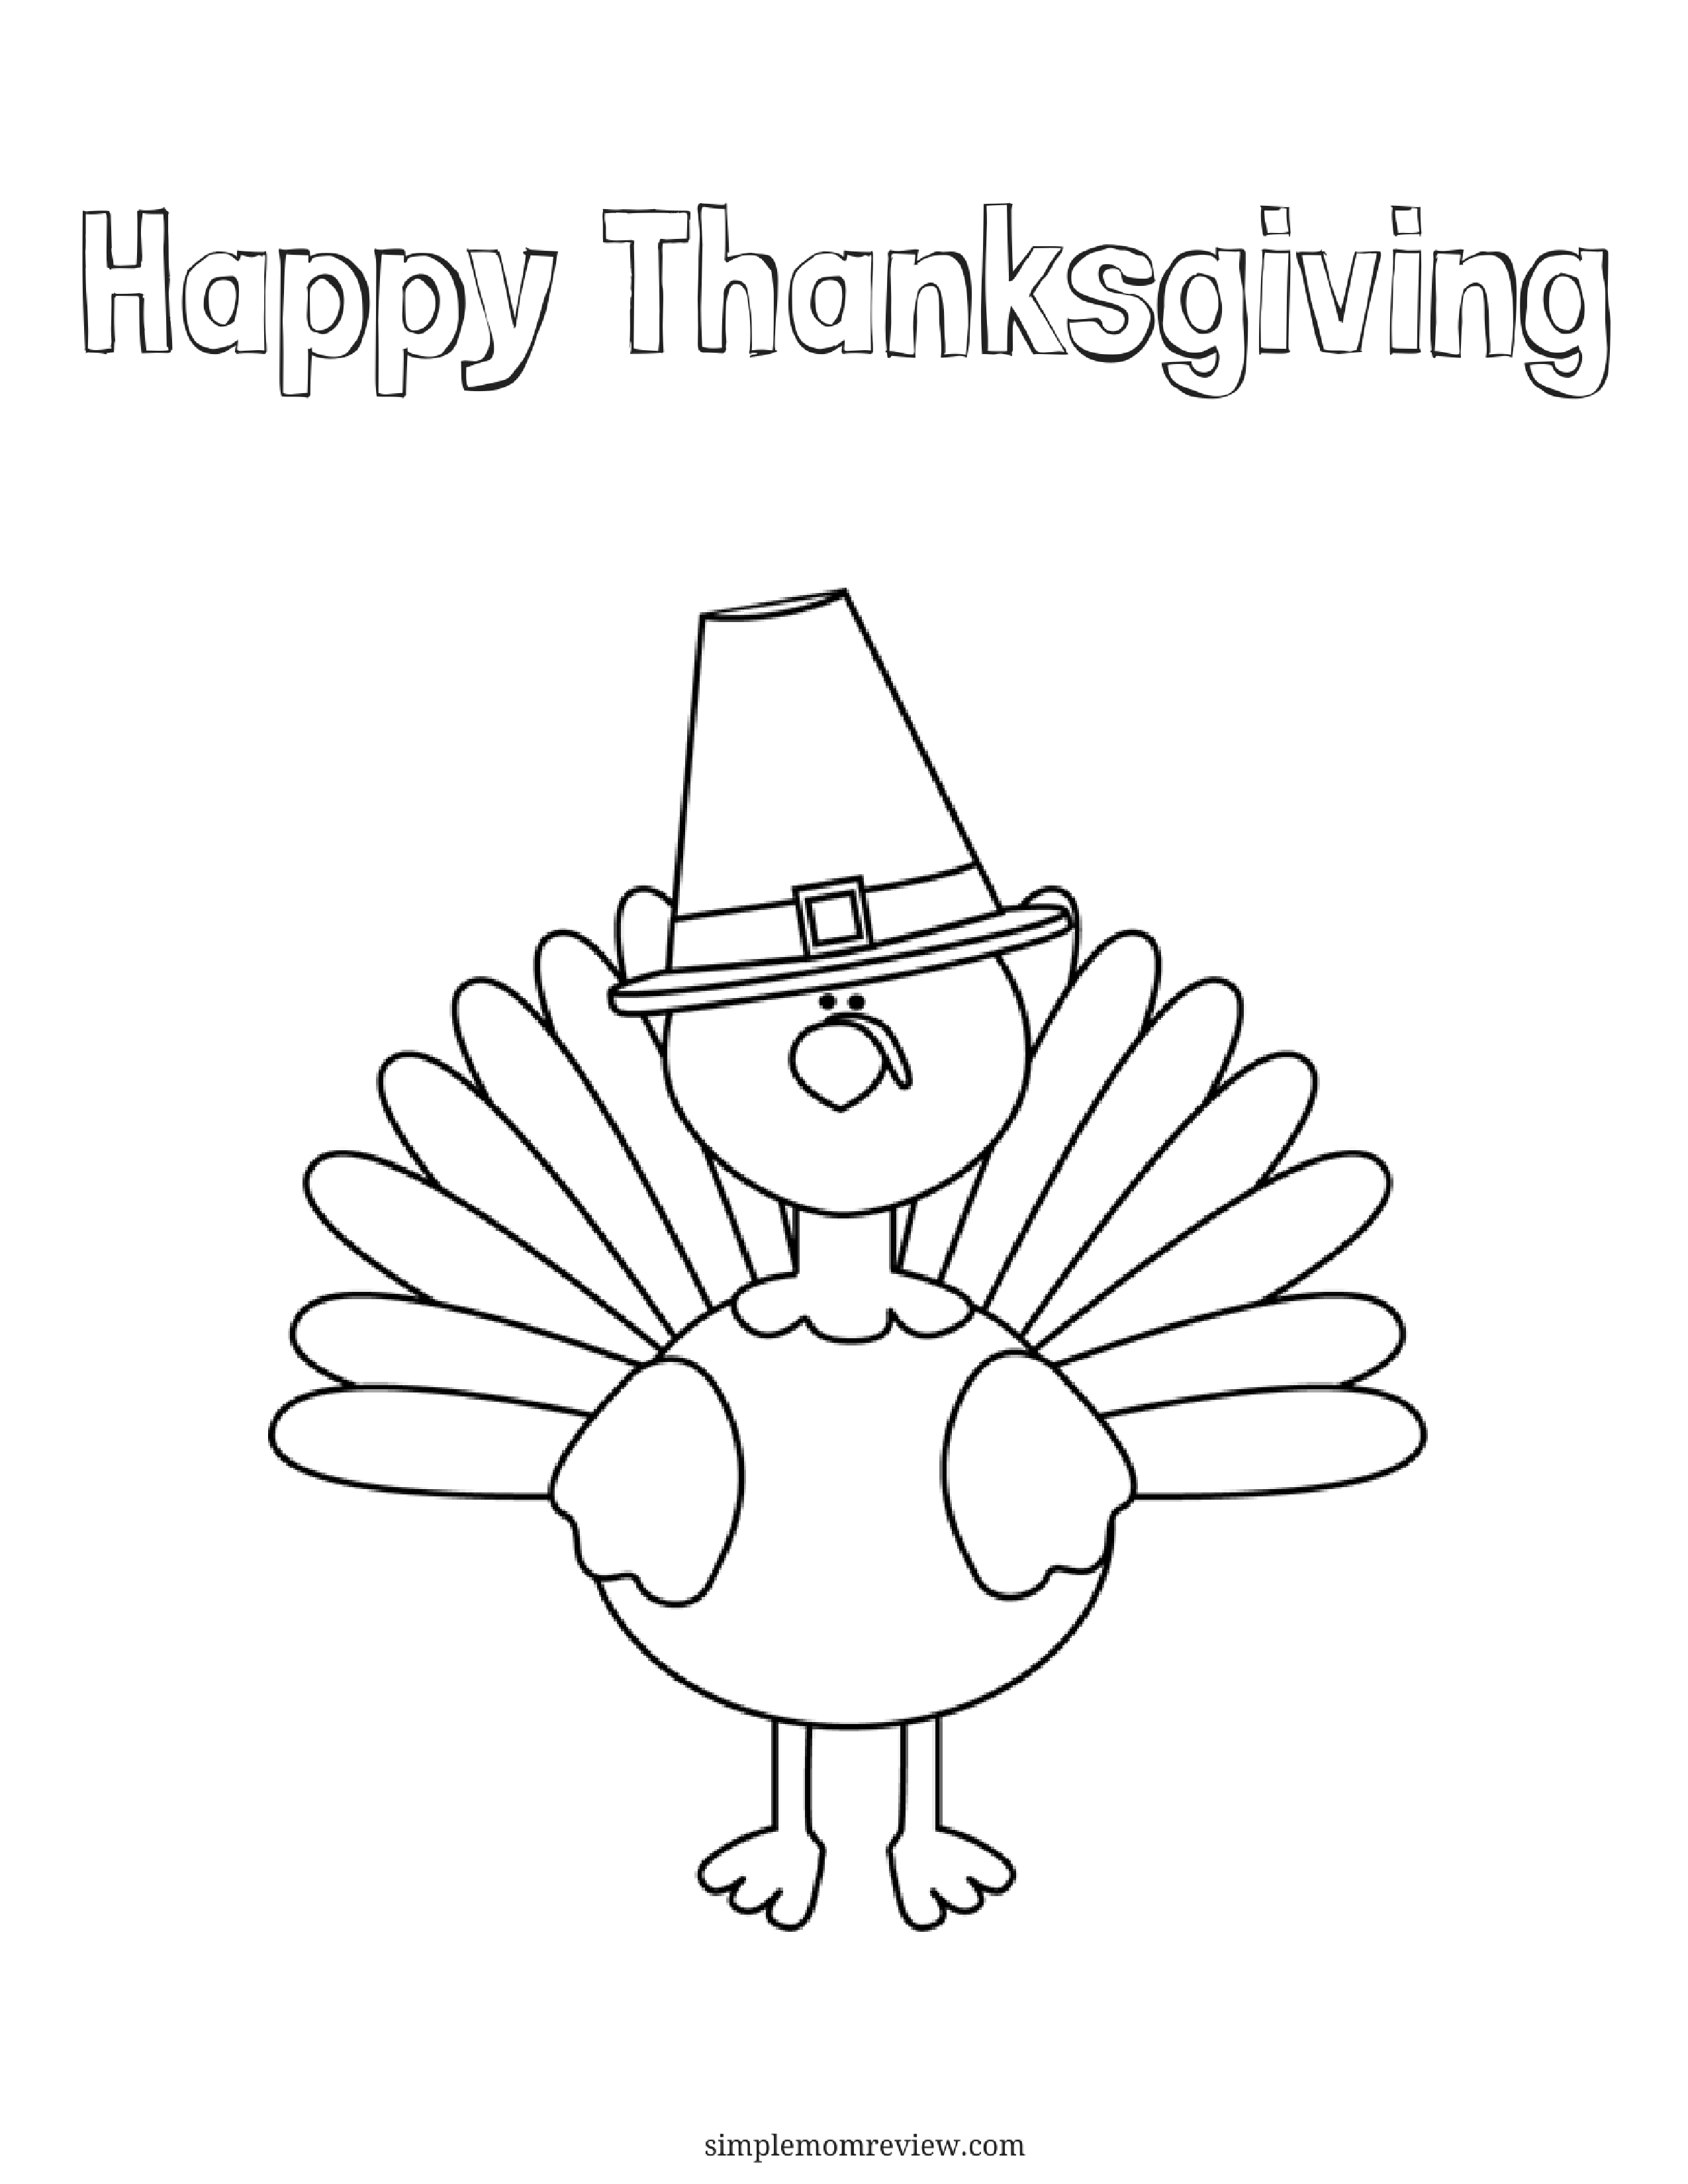 coloring printable turkey the cutest free turkey coloring pages skip to my lou turkey printable coloring